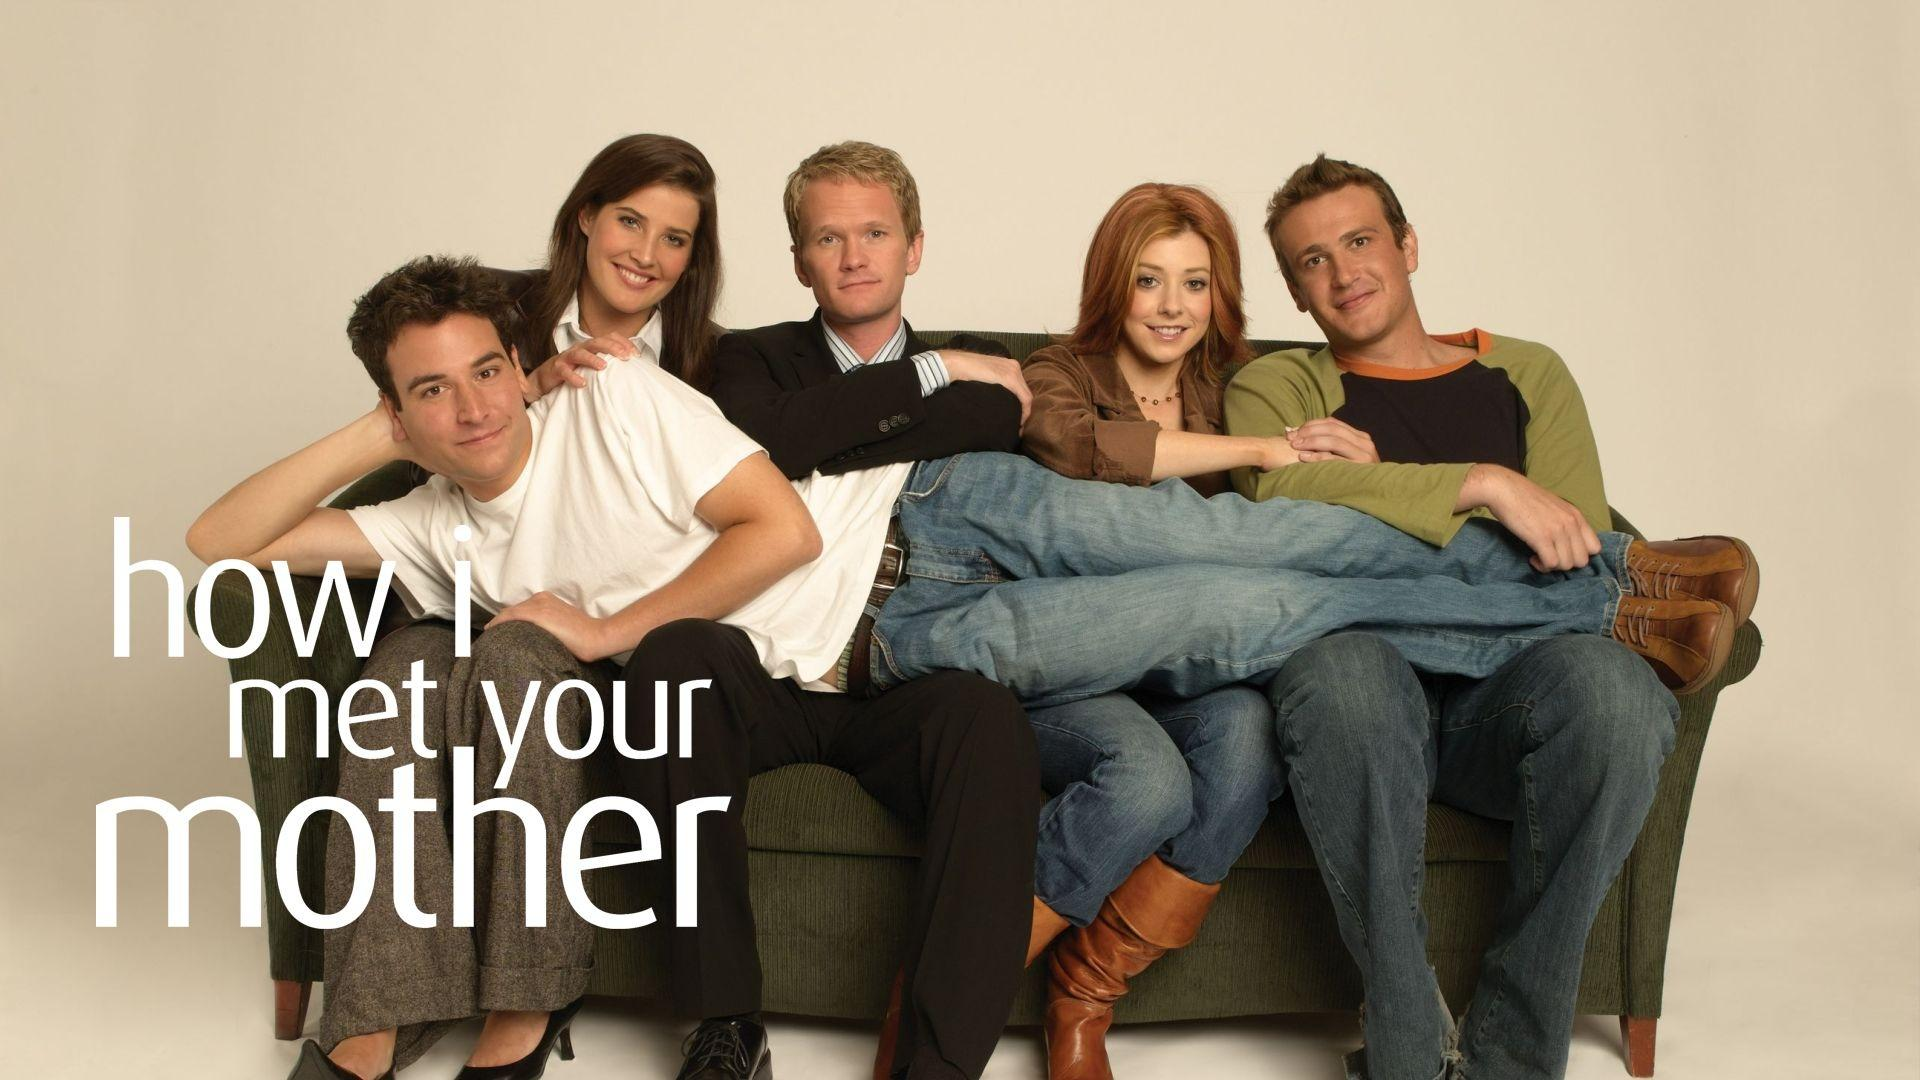 How I Met Your Mother at 750 x 1334 iPhone 6 size wallpapers HD quality